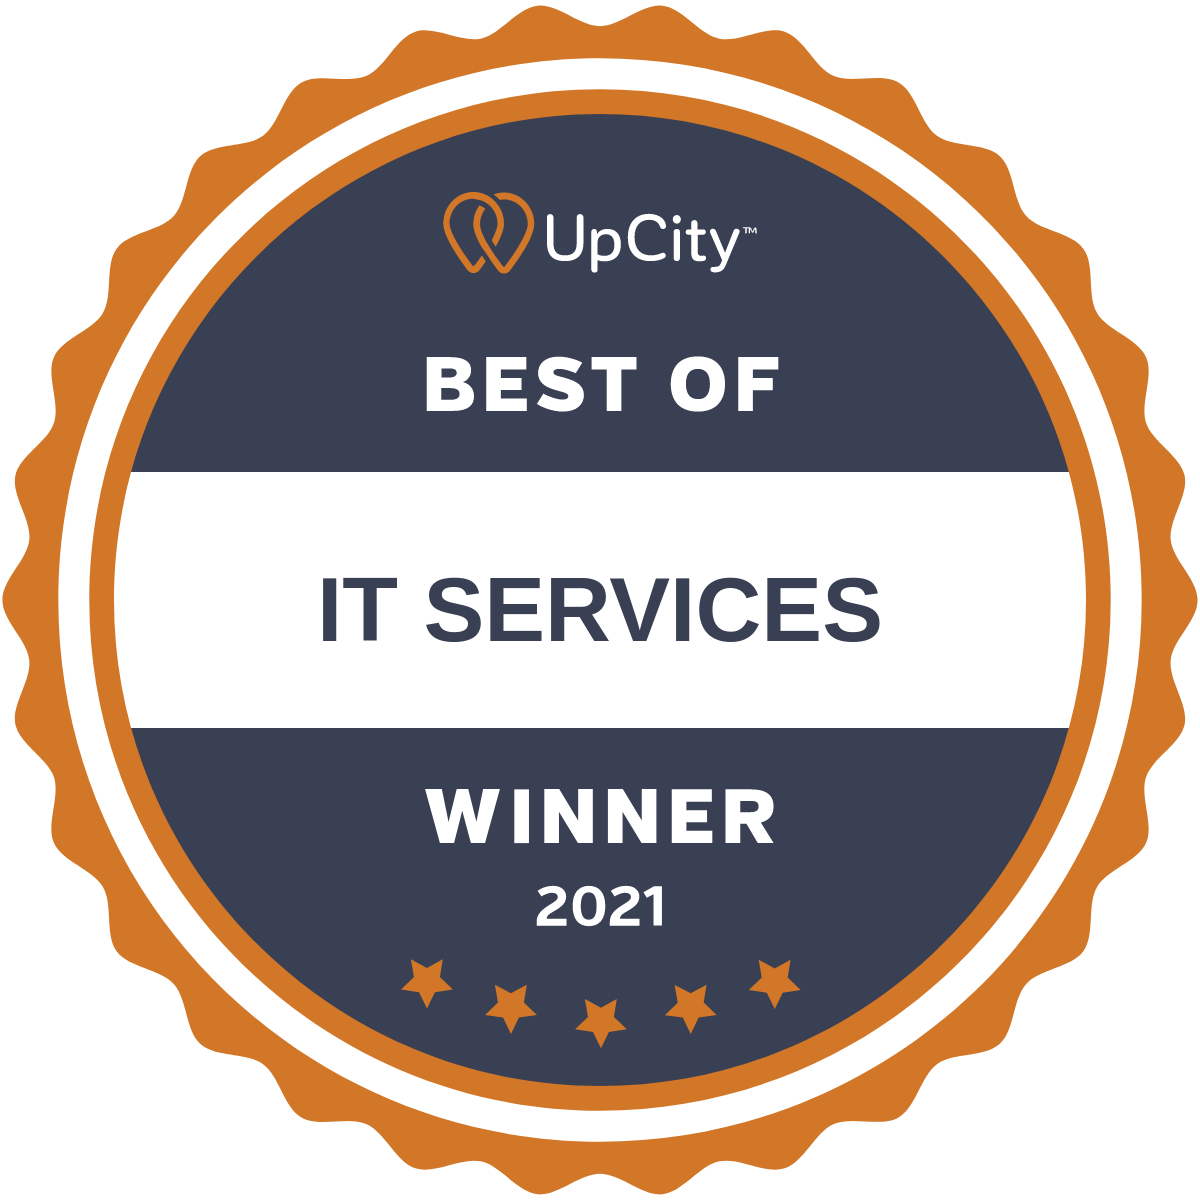 2021 Best of IT Services